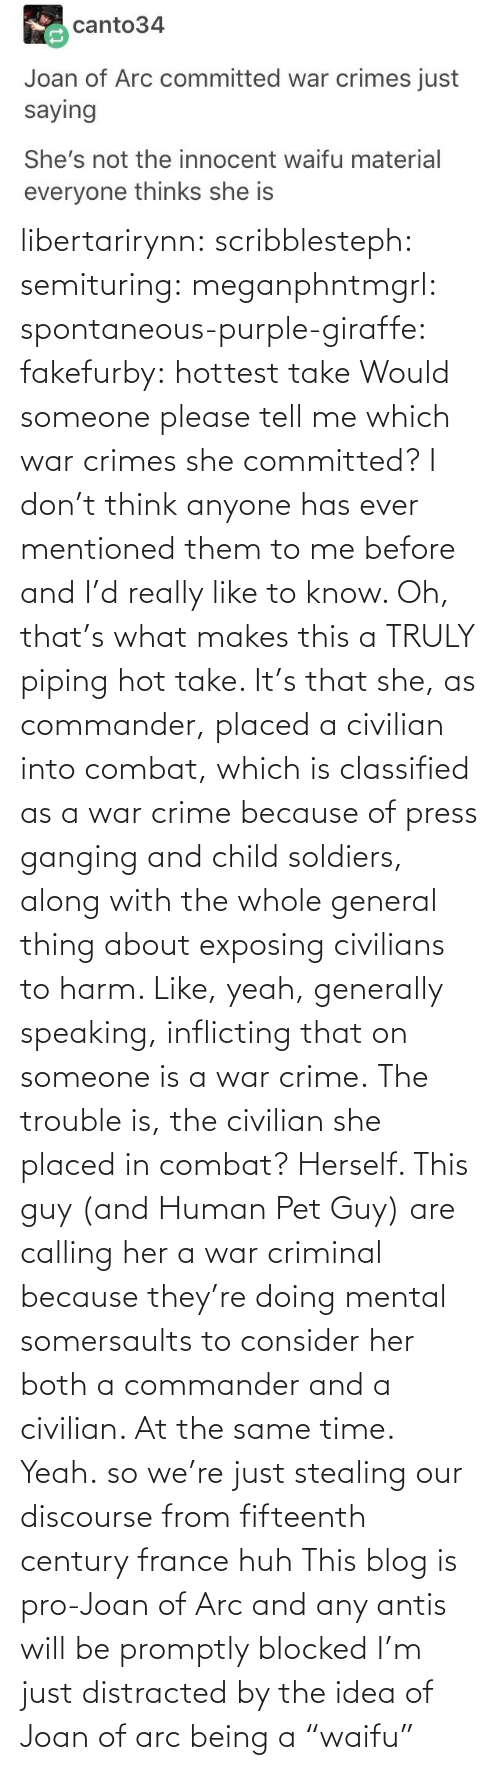 "them: libertarirynn: scribblesteph:  semituring:  meganphntmgrl:  spontaneous-purple-giraffe:   fakefurby: hottest take  Would someone please tell me which war crimes she committed? I don't think anyone has ever mentioned them to me before and I'd really like to know.    Oh, that's what makes this a TRULY piping hot take. It's that she, as commander, placed a civilian into combat, which is classified as a war crime because of press ganging and child soldiers, along with the whole general thing about exposing civilians to harm. Like, yeah, generally speaking, inflicting that on someone is a war crime. The trouble is, the civilian she placed in combat? Herself.  This guy (and Human Pet Guy) are calling her a war criminal because they're doing mental somersaults to consider her both a commander and a civilian. At the same time.  Yeah.  so we're just stealing our discourse from fifteenth century france huh   This blog is pro-Joan of Arc and any antis will be promptly blocked   I'm just distracted by the idea of Joan of arc being a ""waifu"""